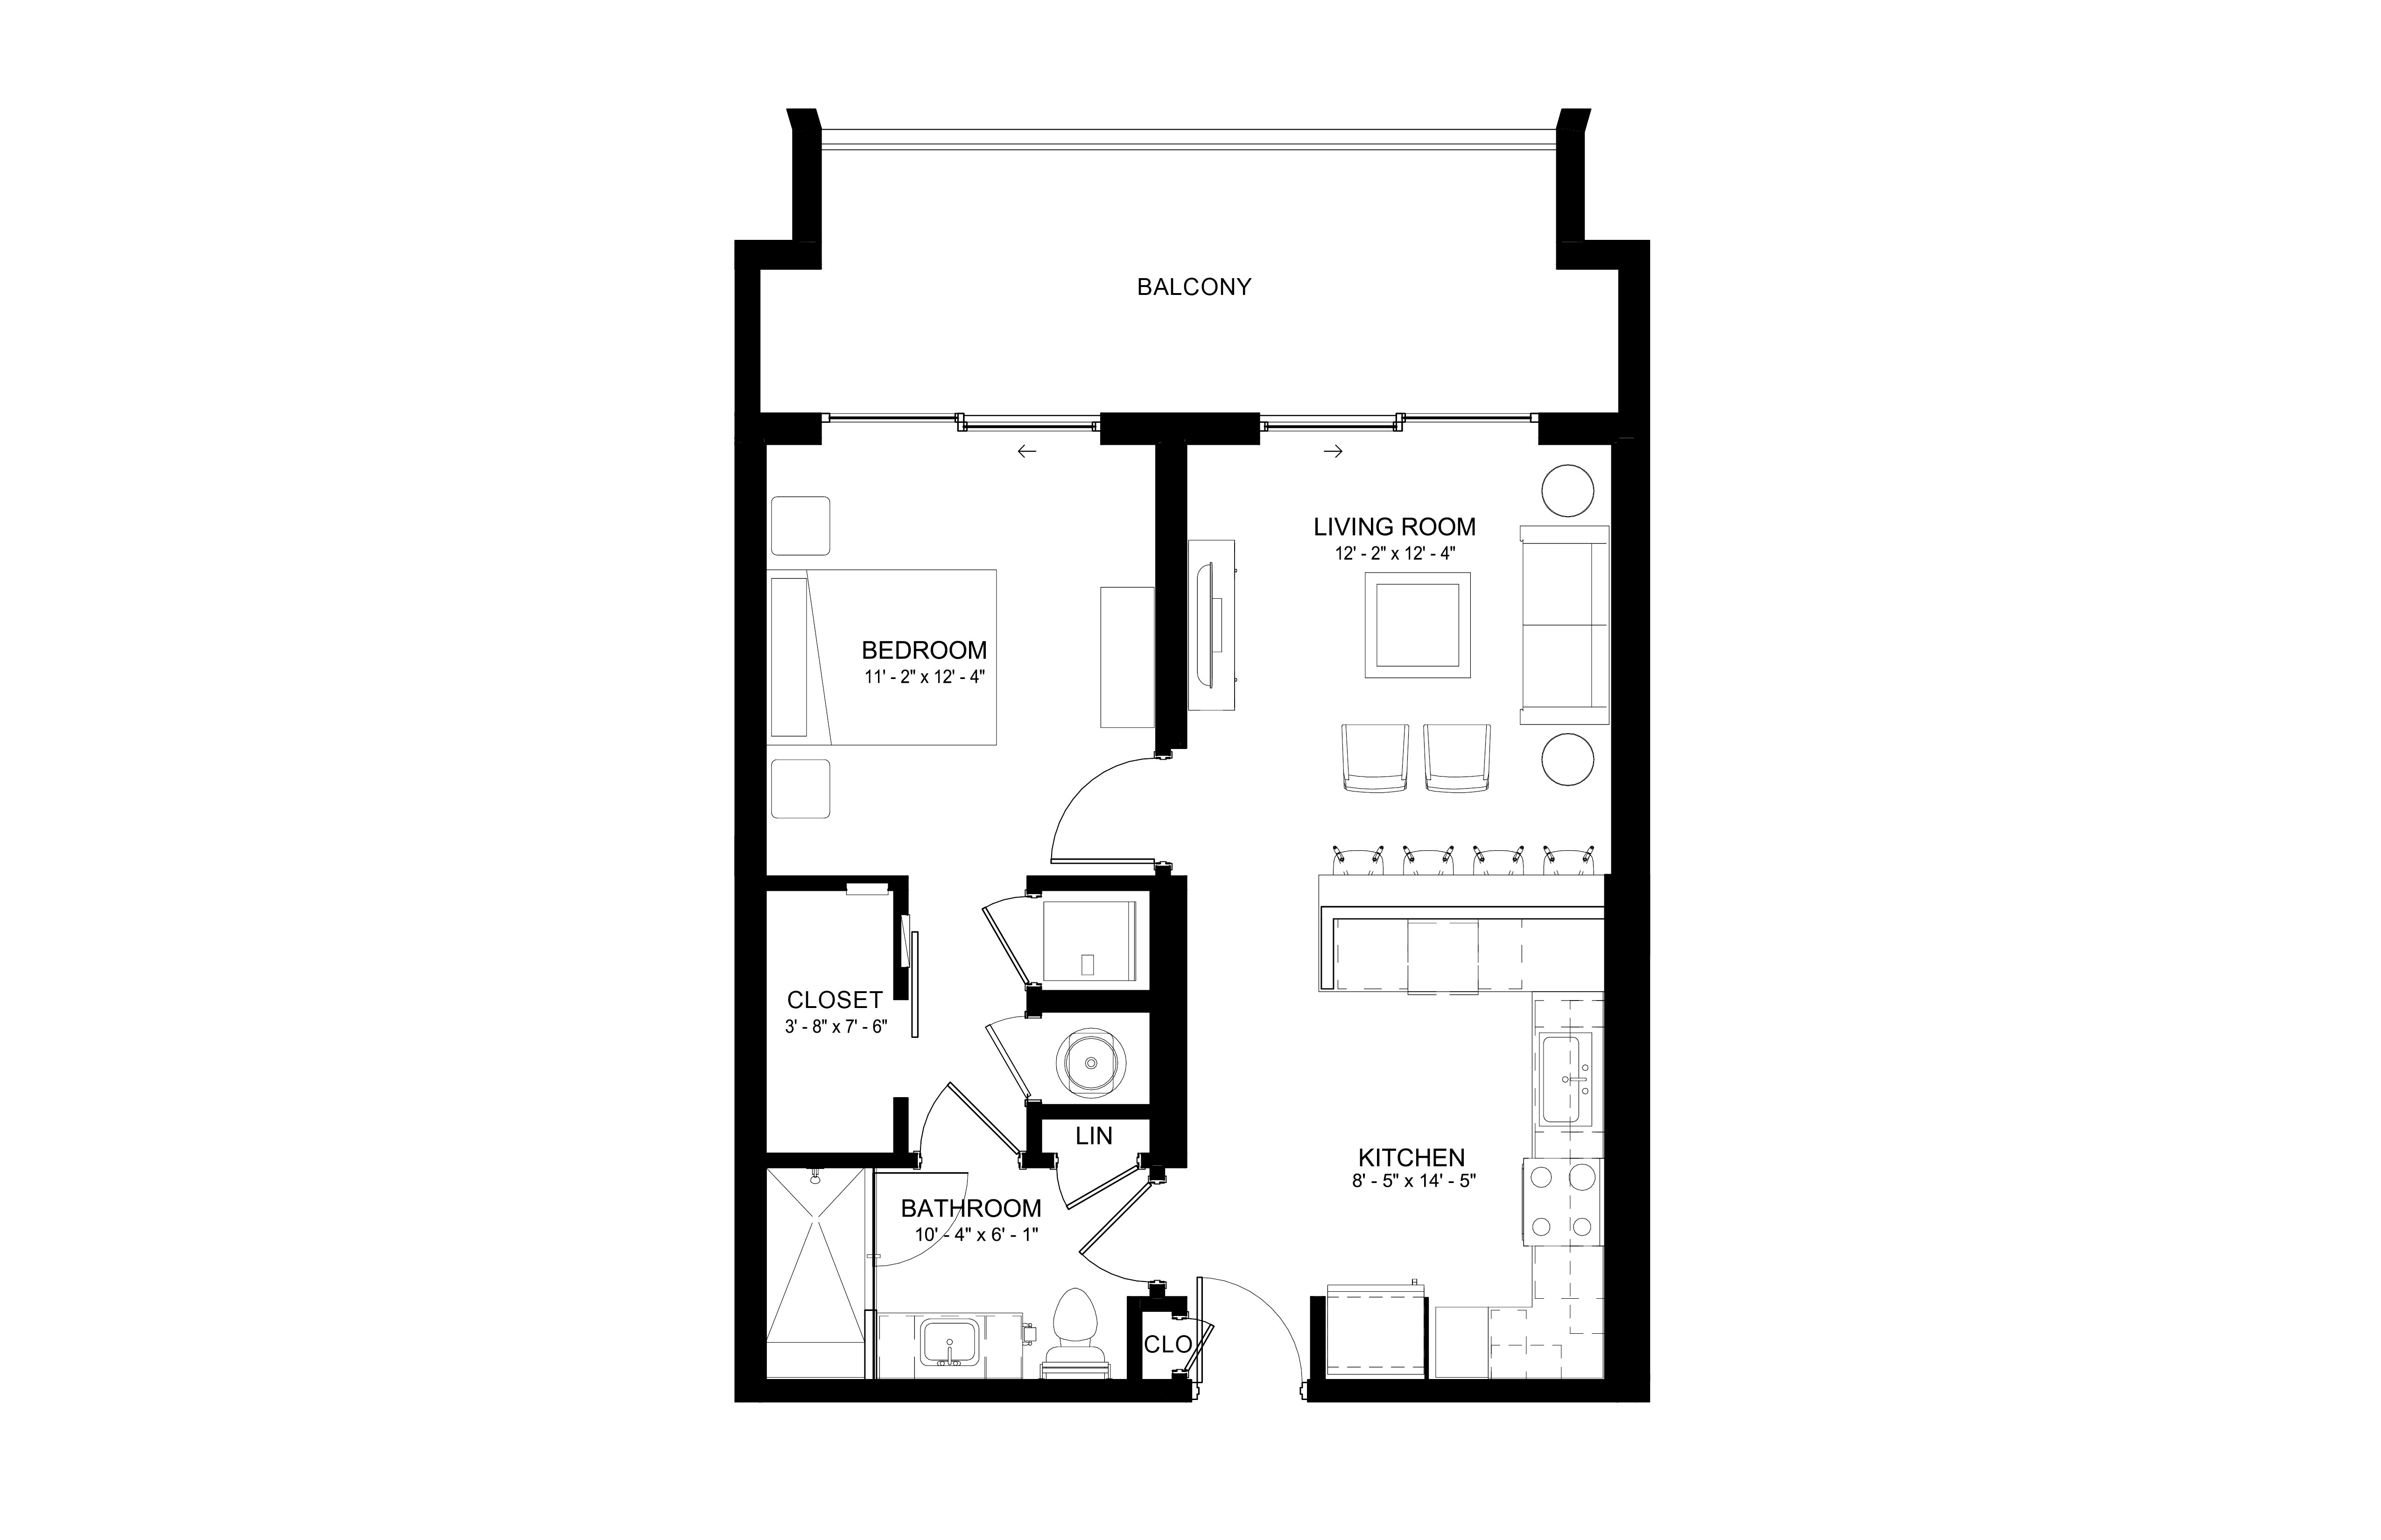 Apartment 208 floorplan